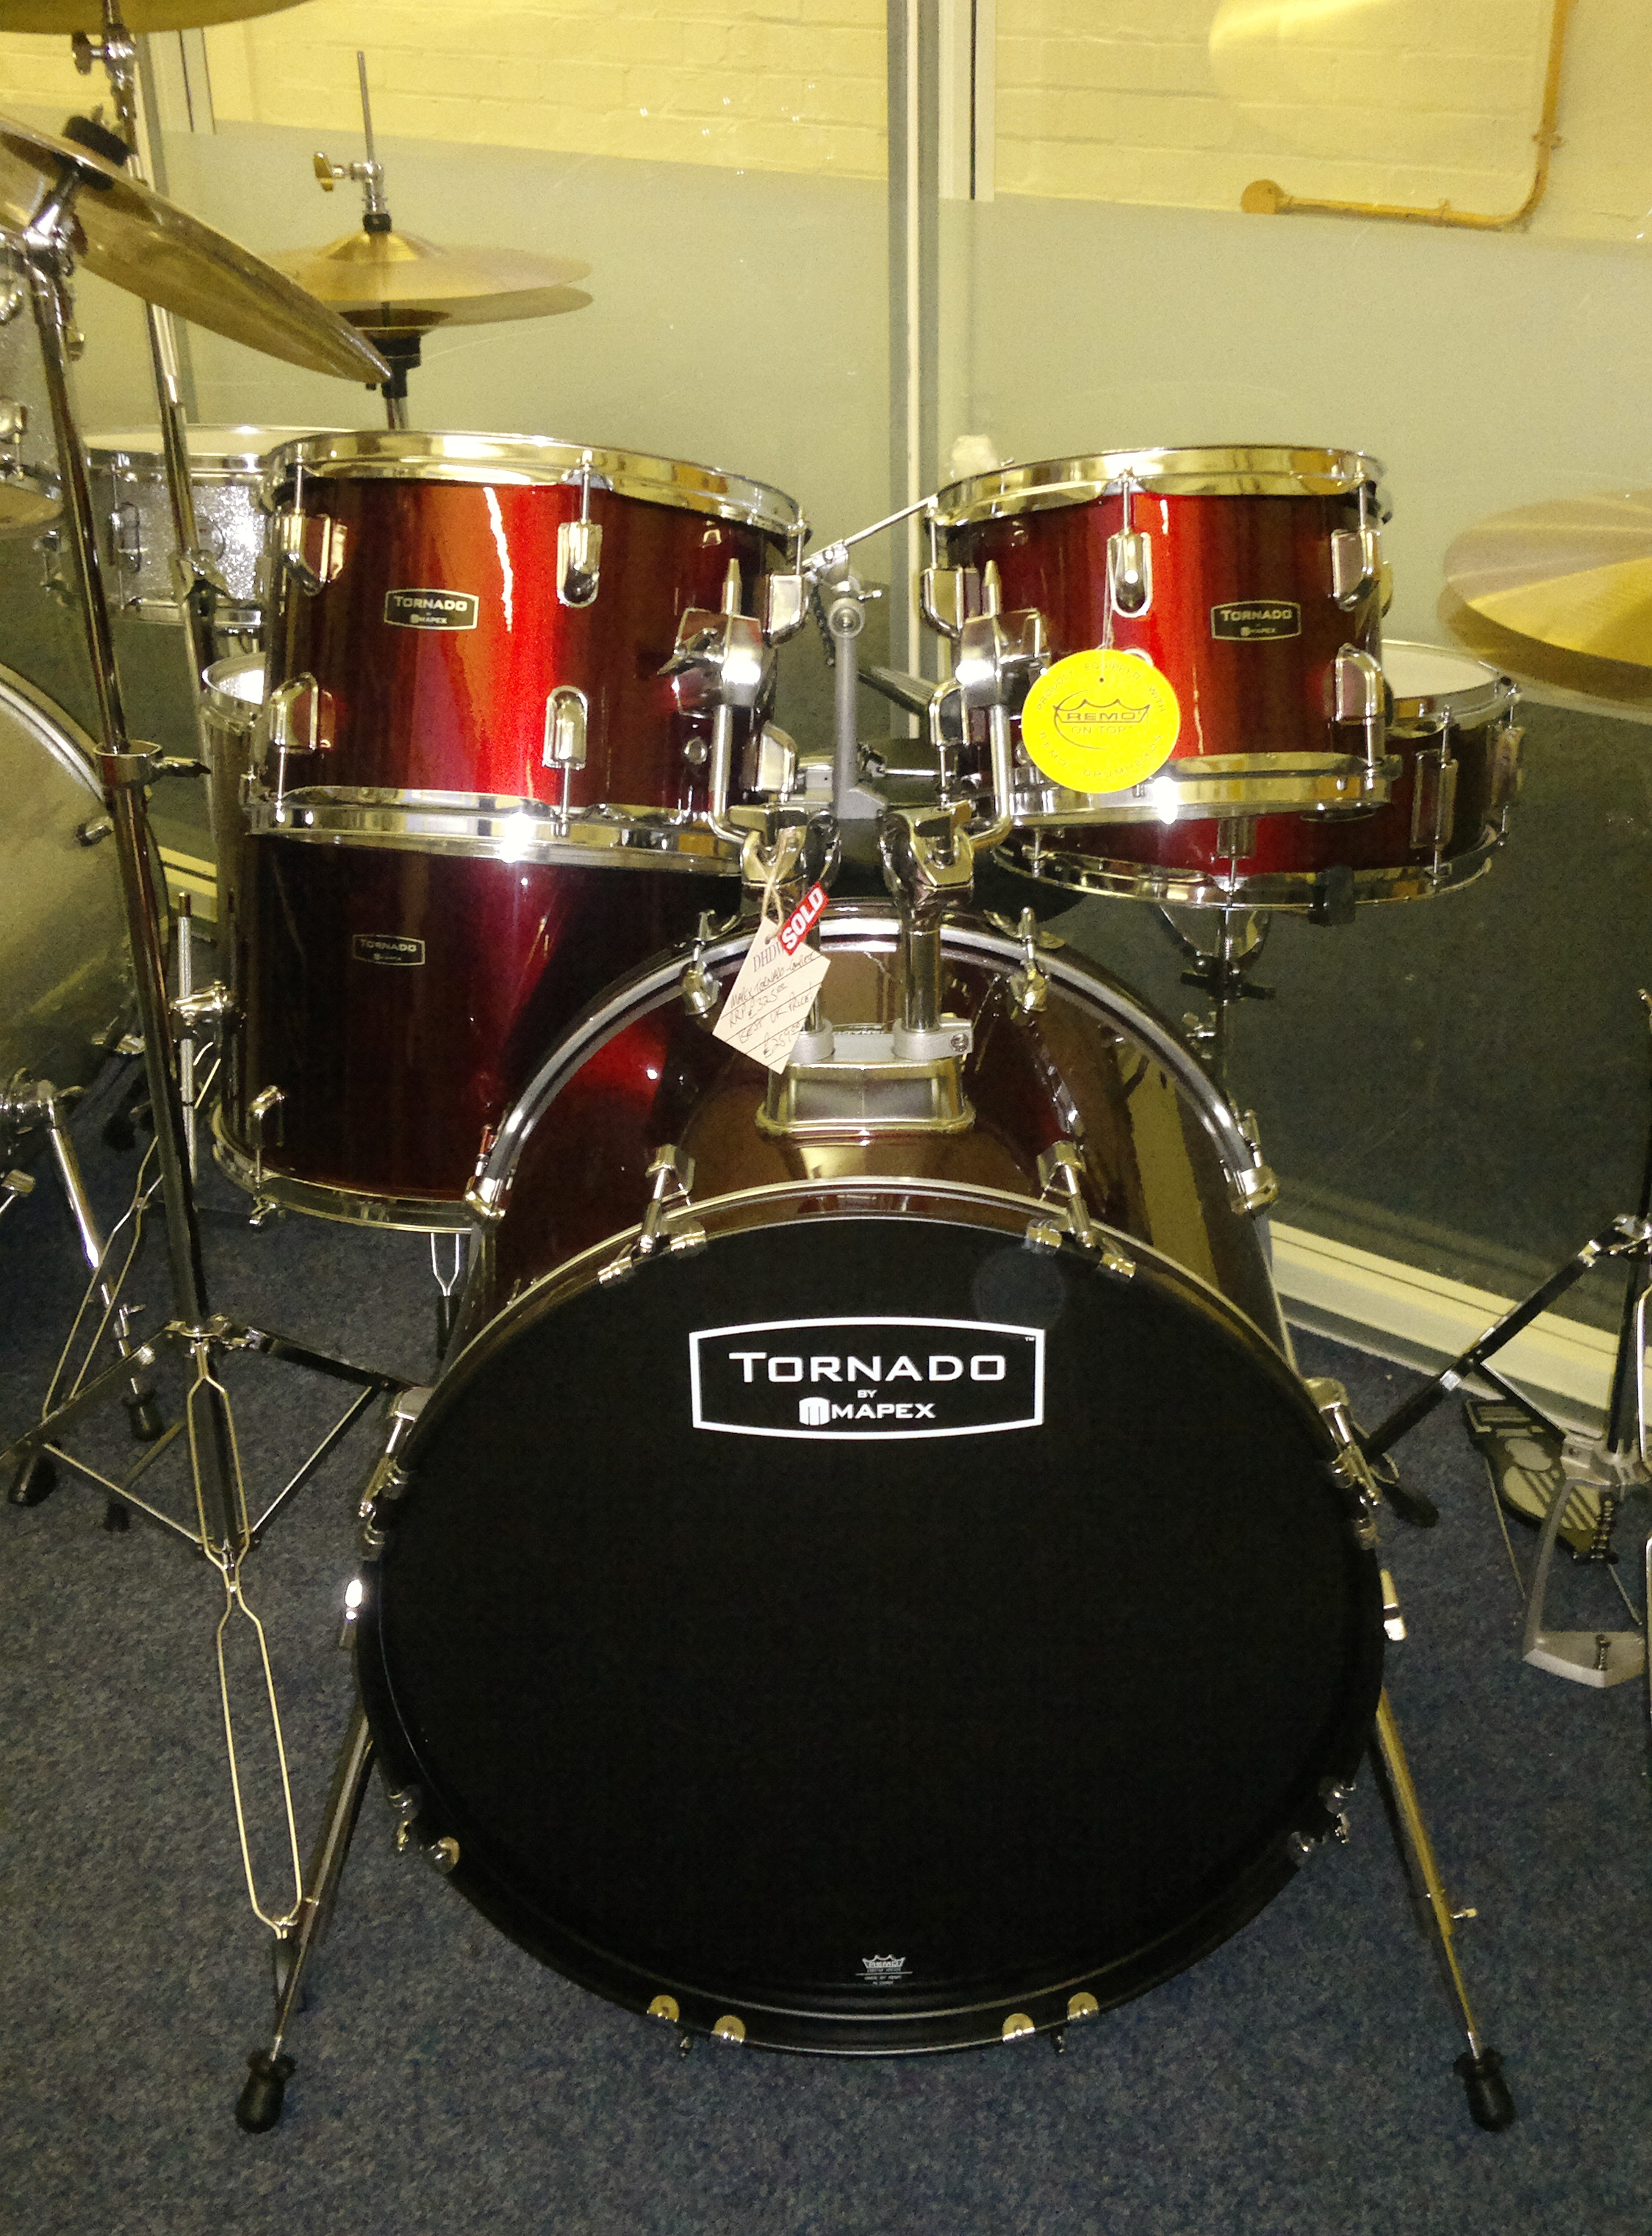 Mapex Tornado drum kit at the Dye House Drum Works drum shop, Leicester.